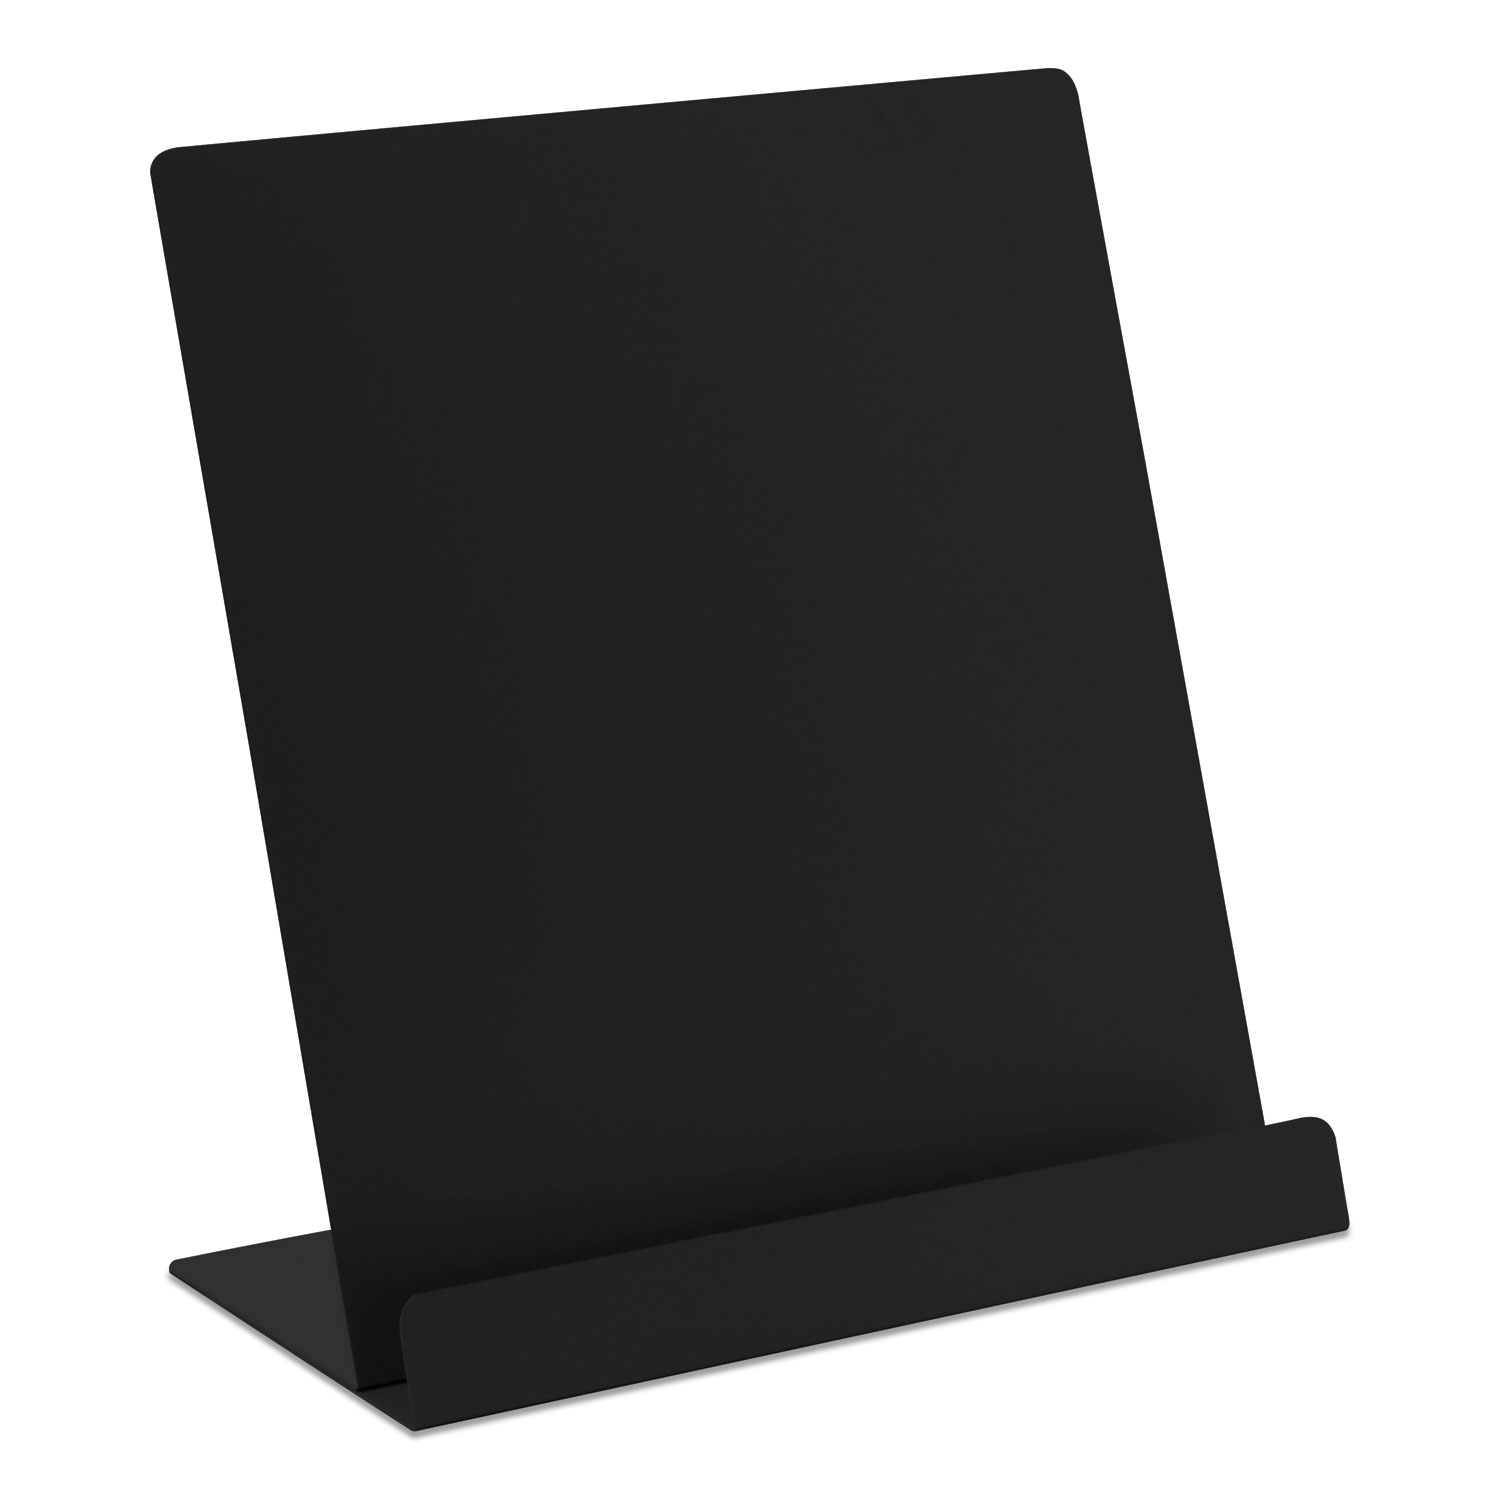 Tablet Stand or iPads and Tablets, Aluminum, Black